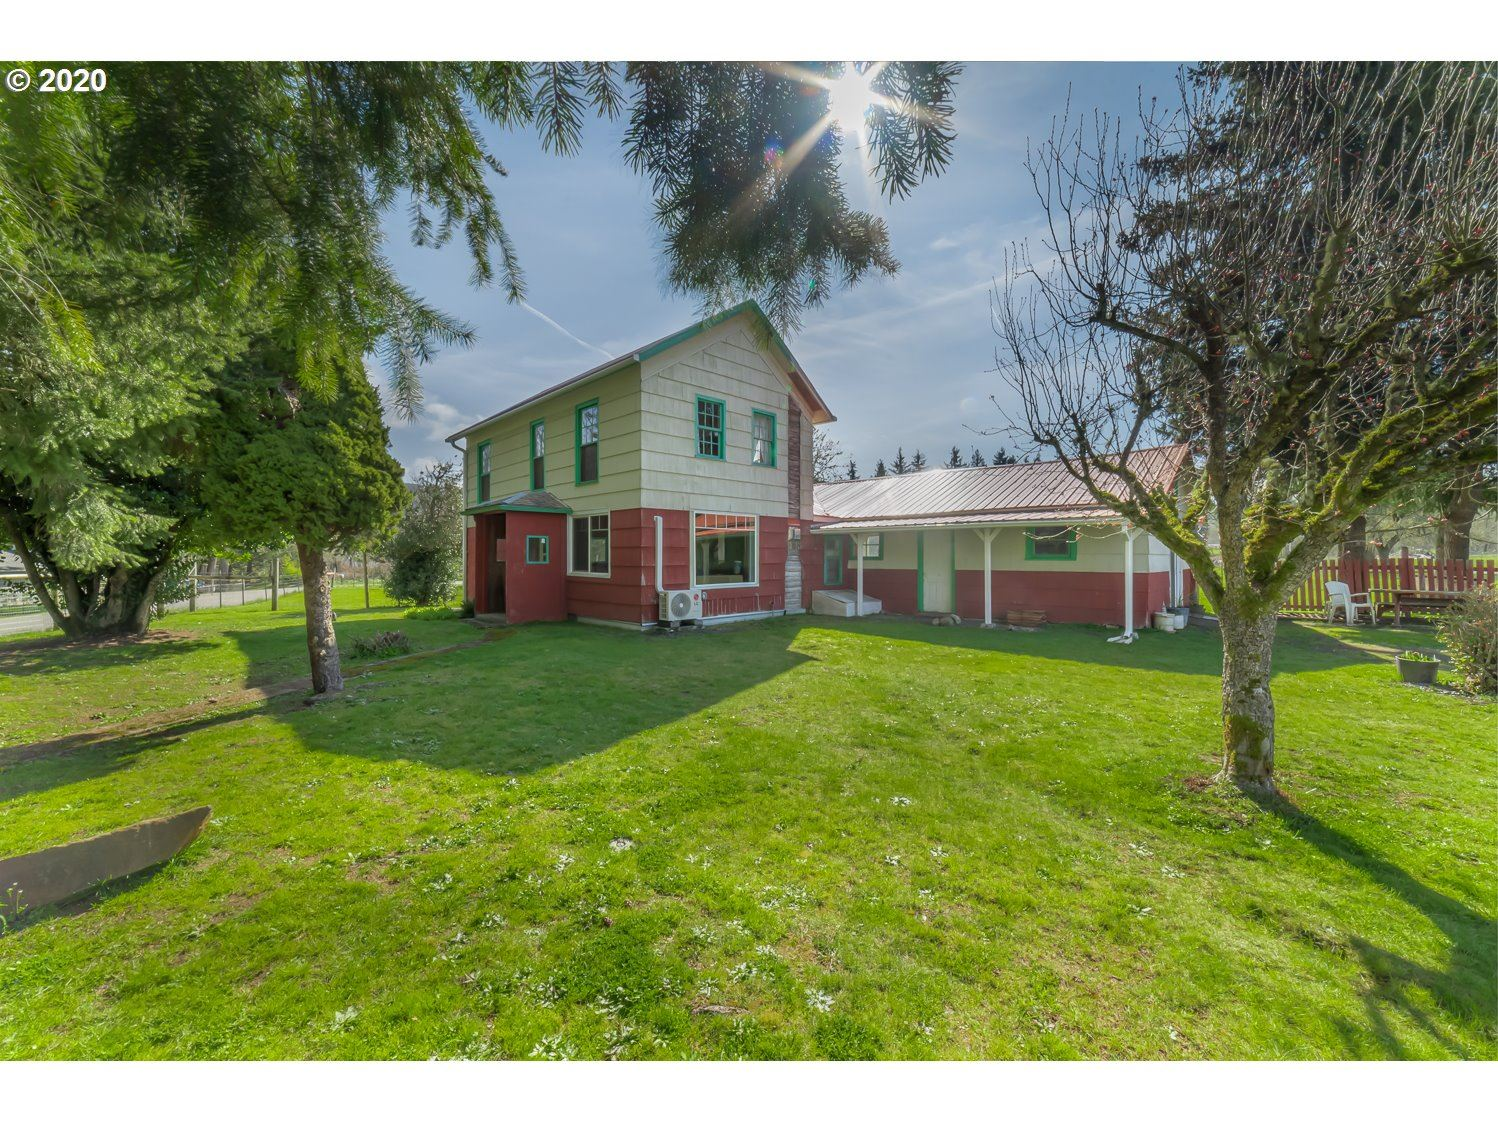 Photo for 82260 LOST VALLEY LN, Dexter, OR 97431 (MLS # 20037768)